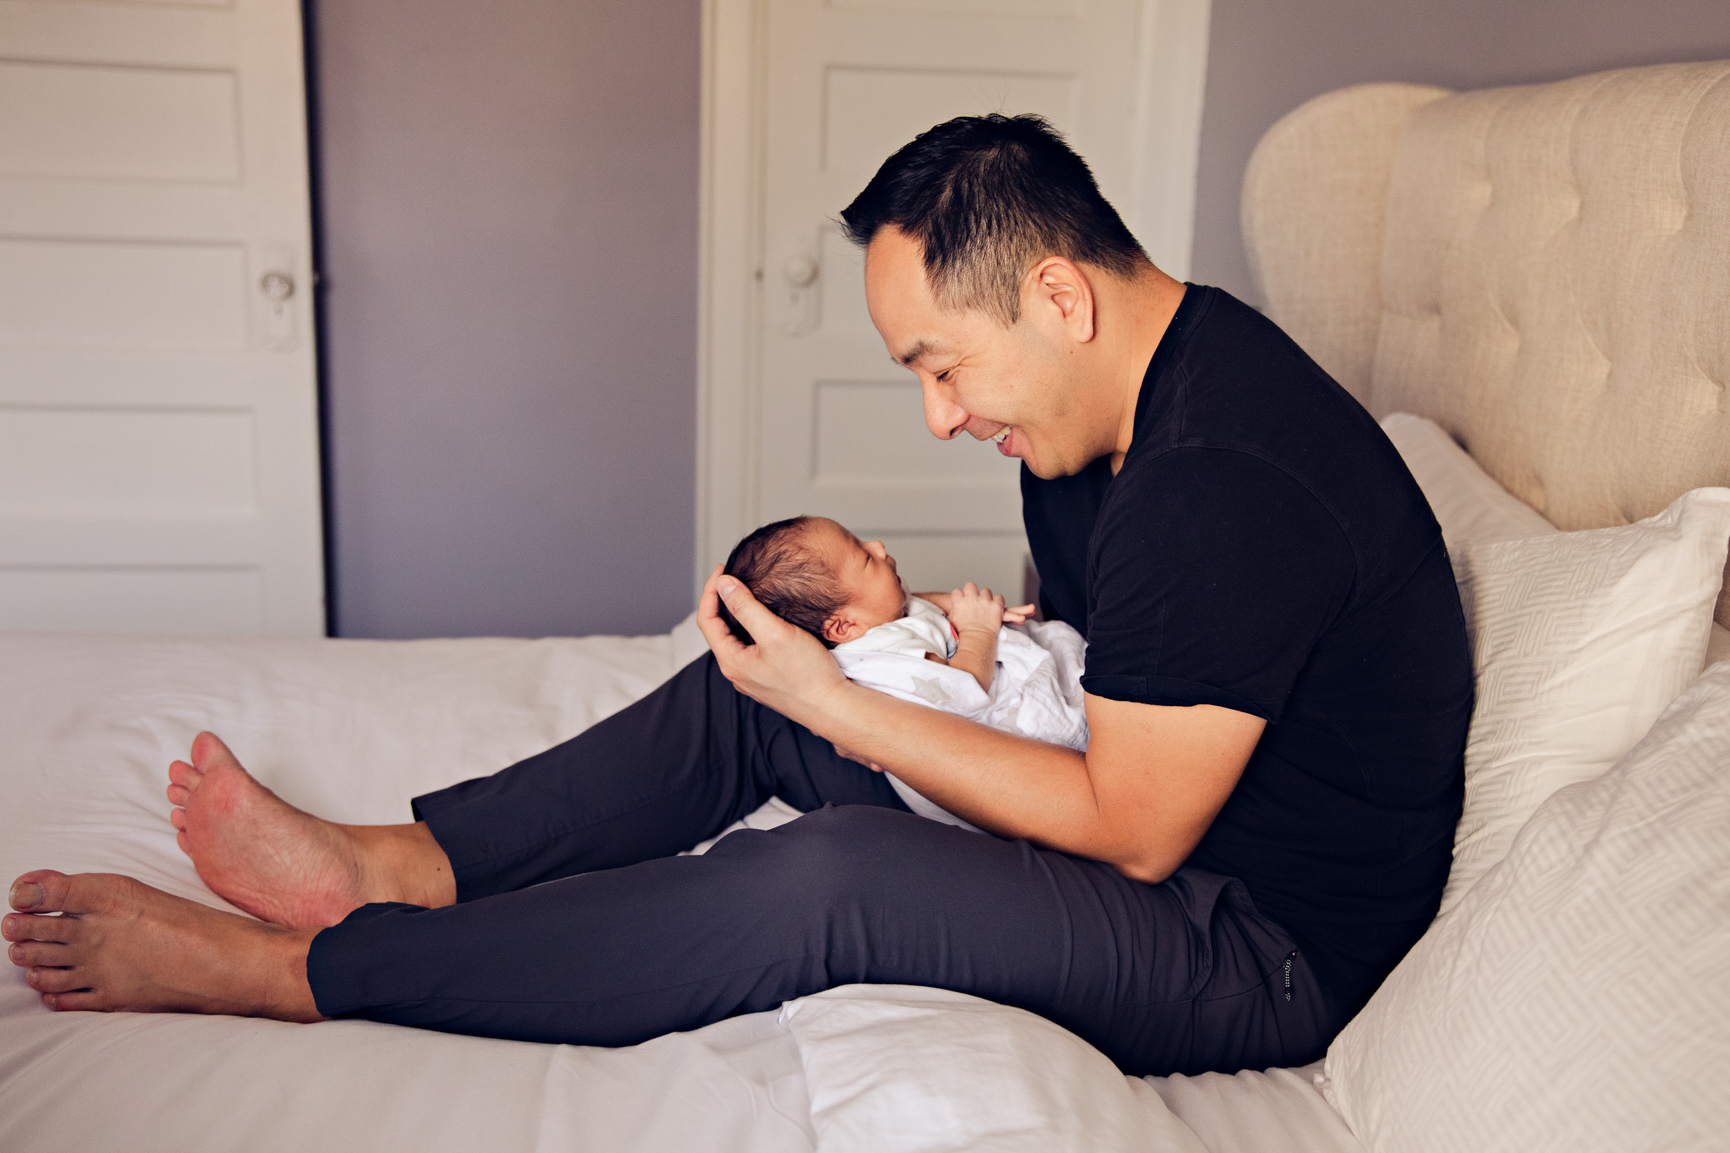 dad sitting on bed smiling down at newborn son